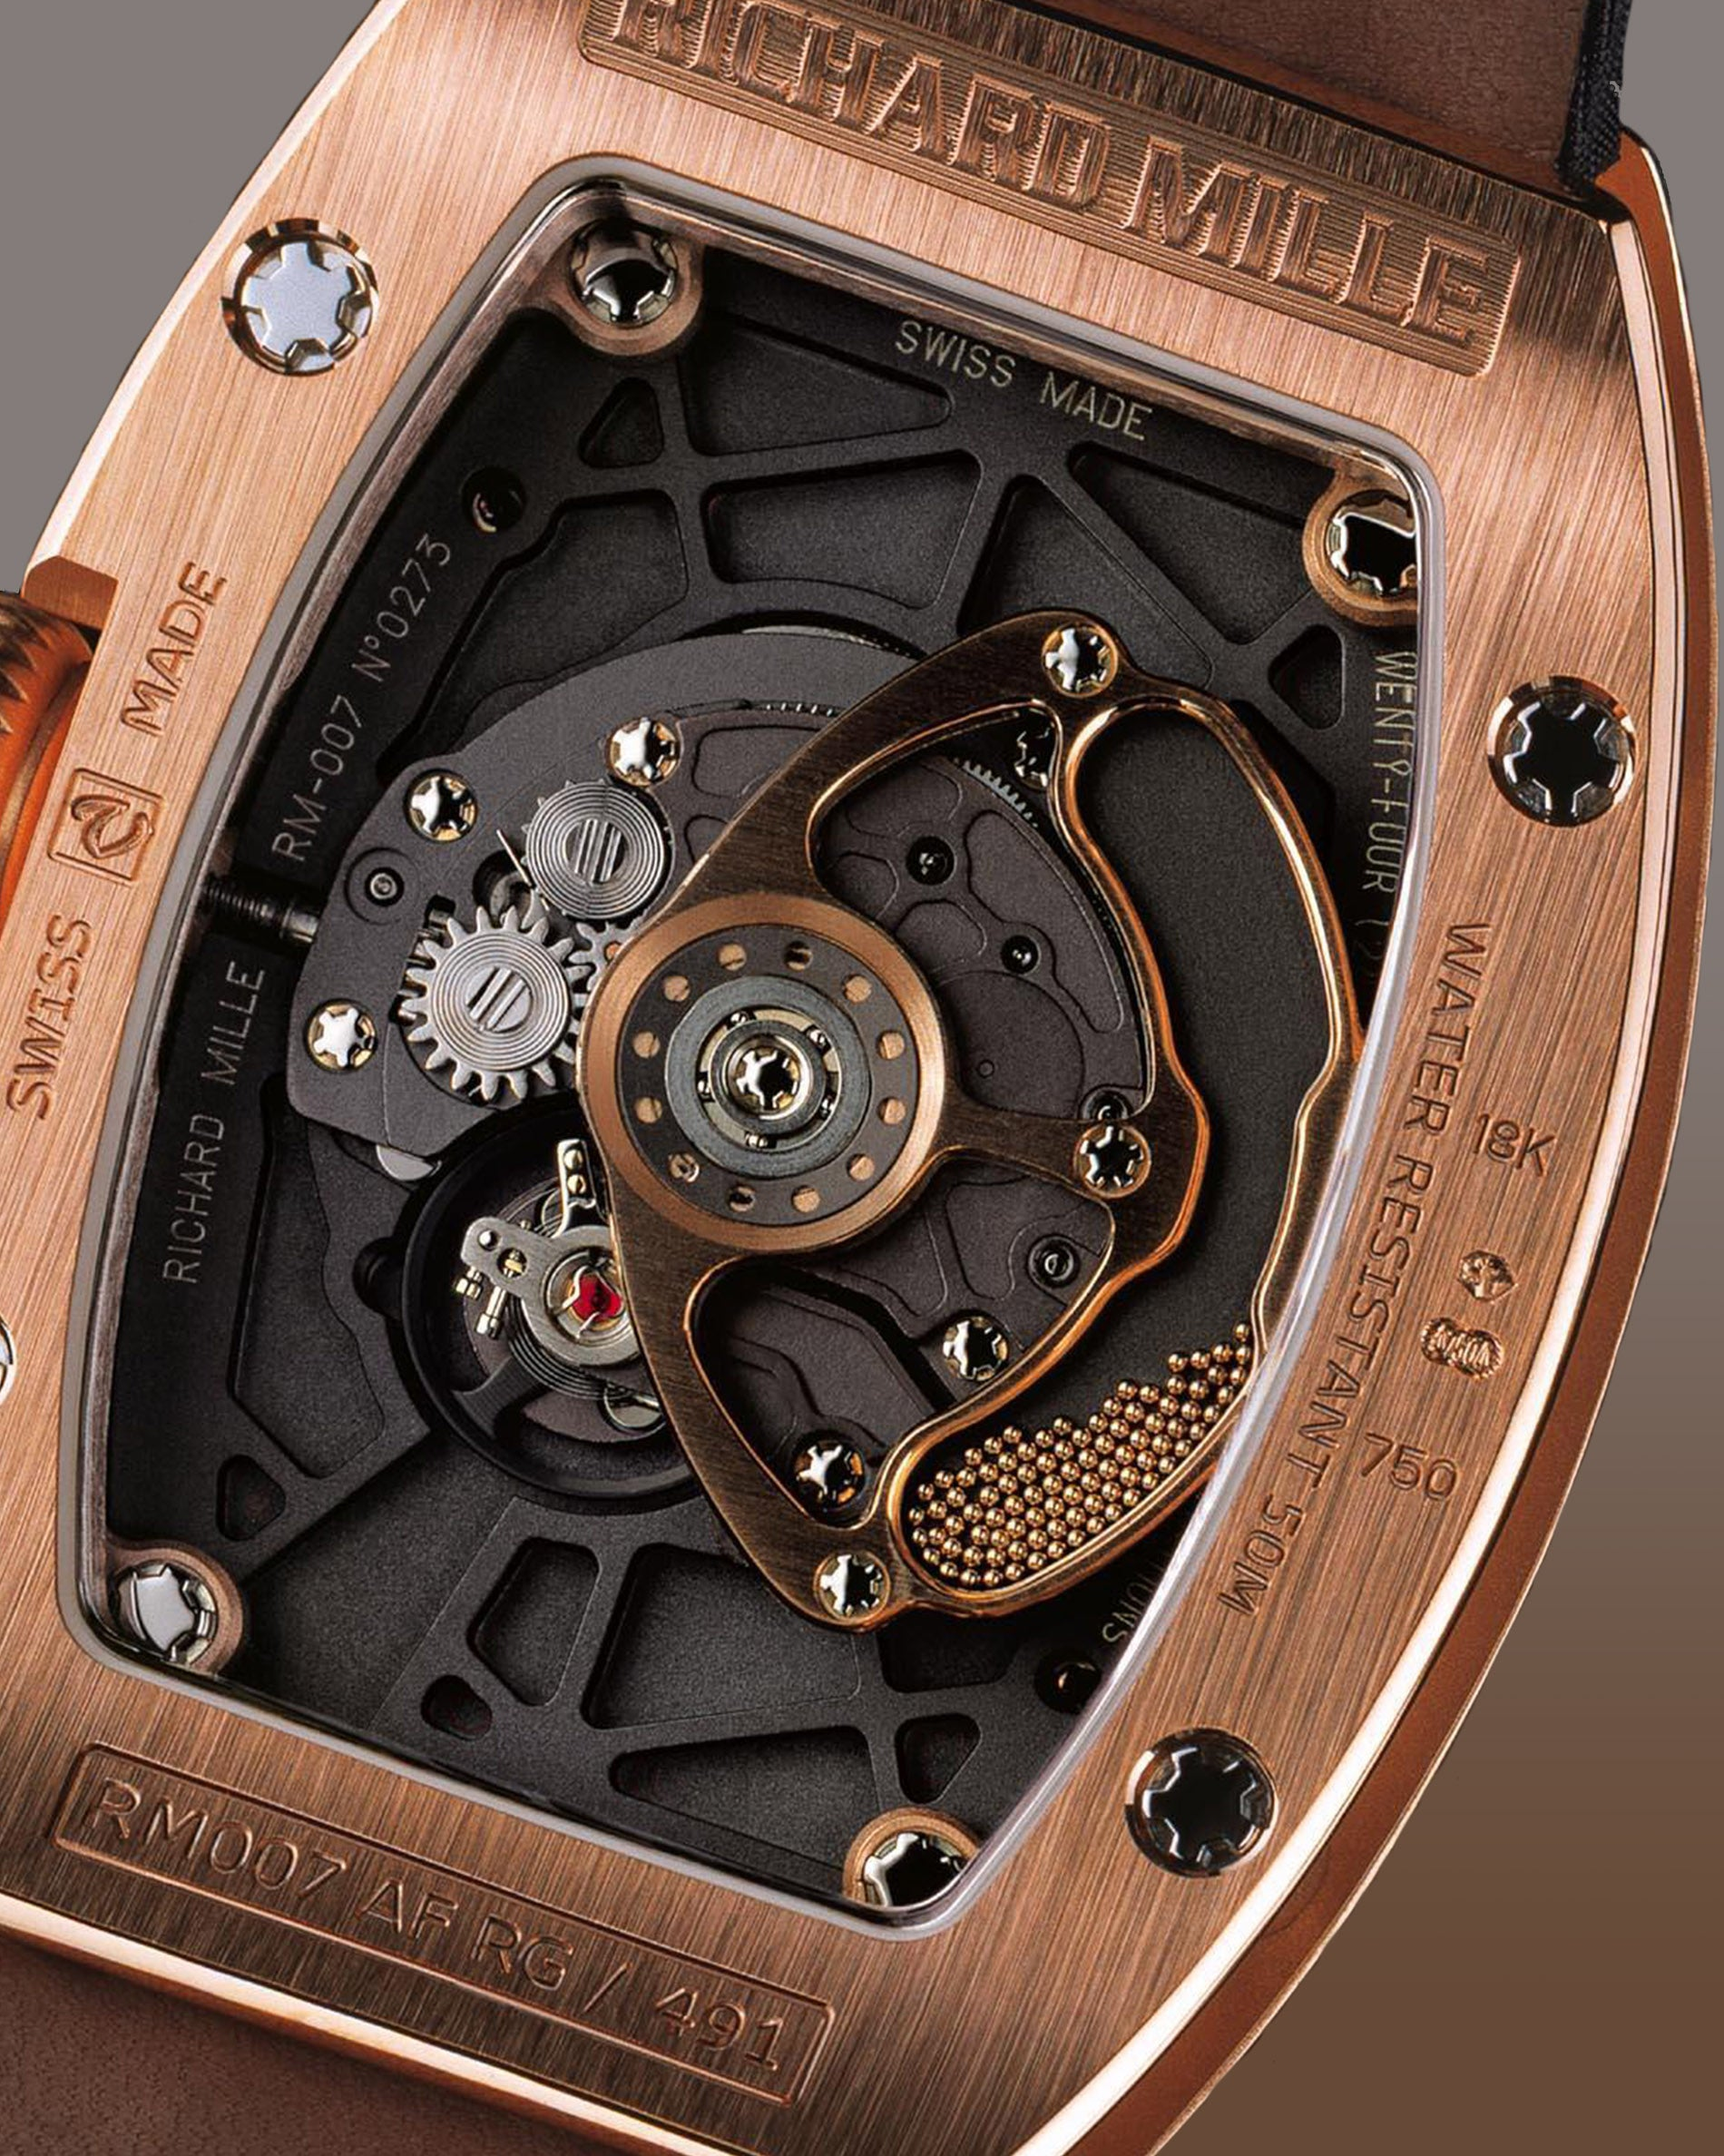 Richard Mille RM007 case back in rose gold showing micro balls inside the rotor for A Collected Man Lonodn